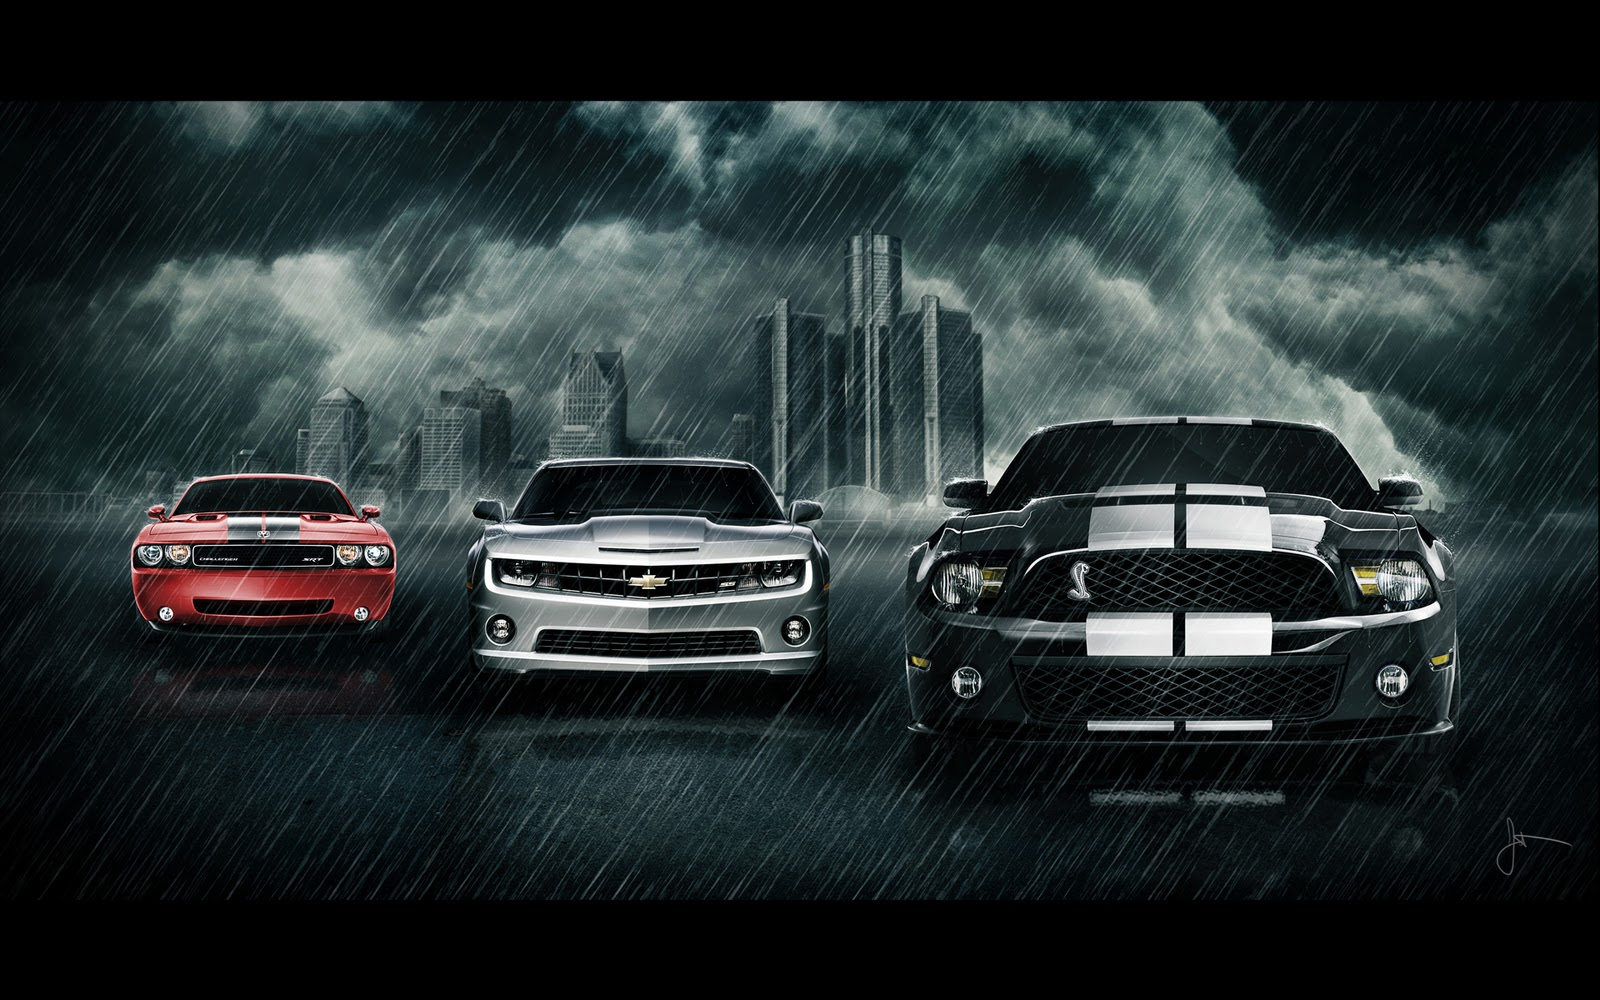 HD car Wallpapers is the no1 source of Car wallpapers 1600x1000